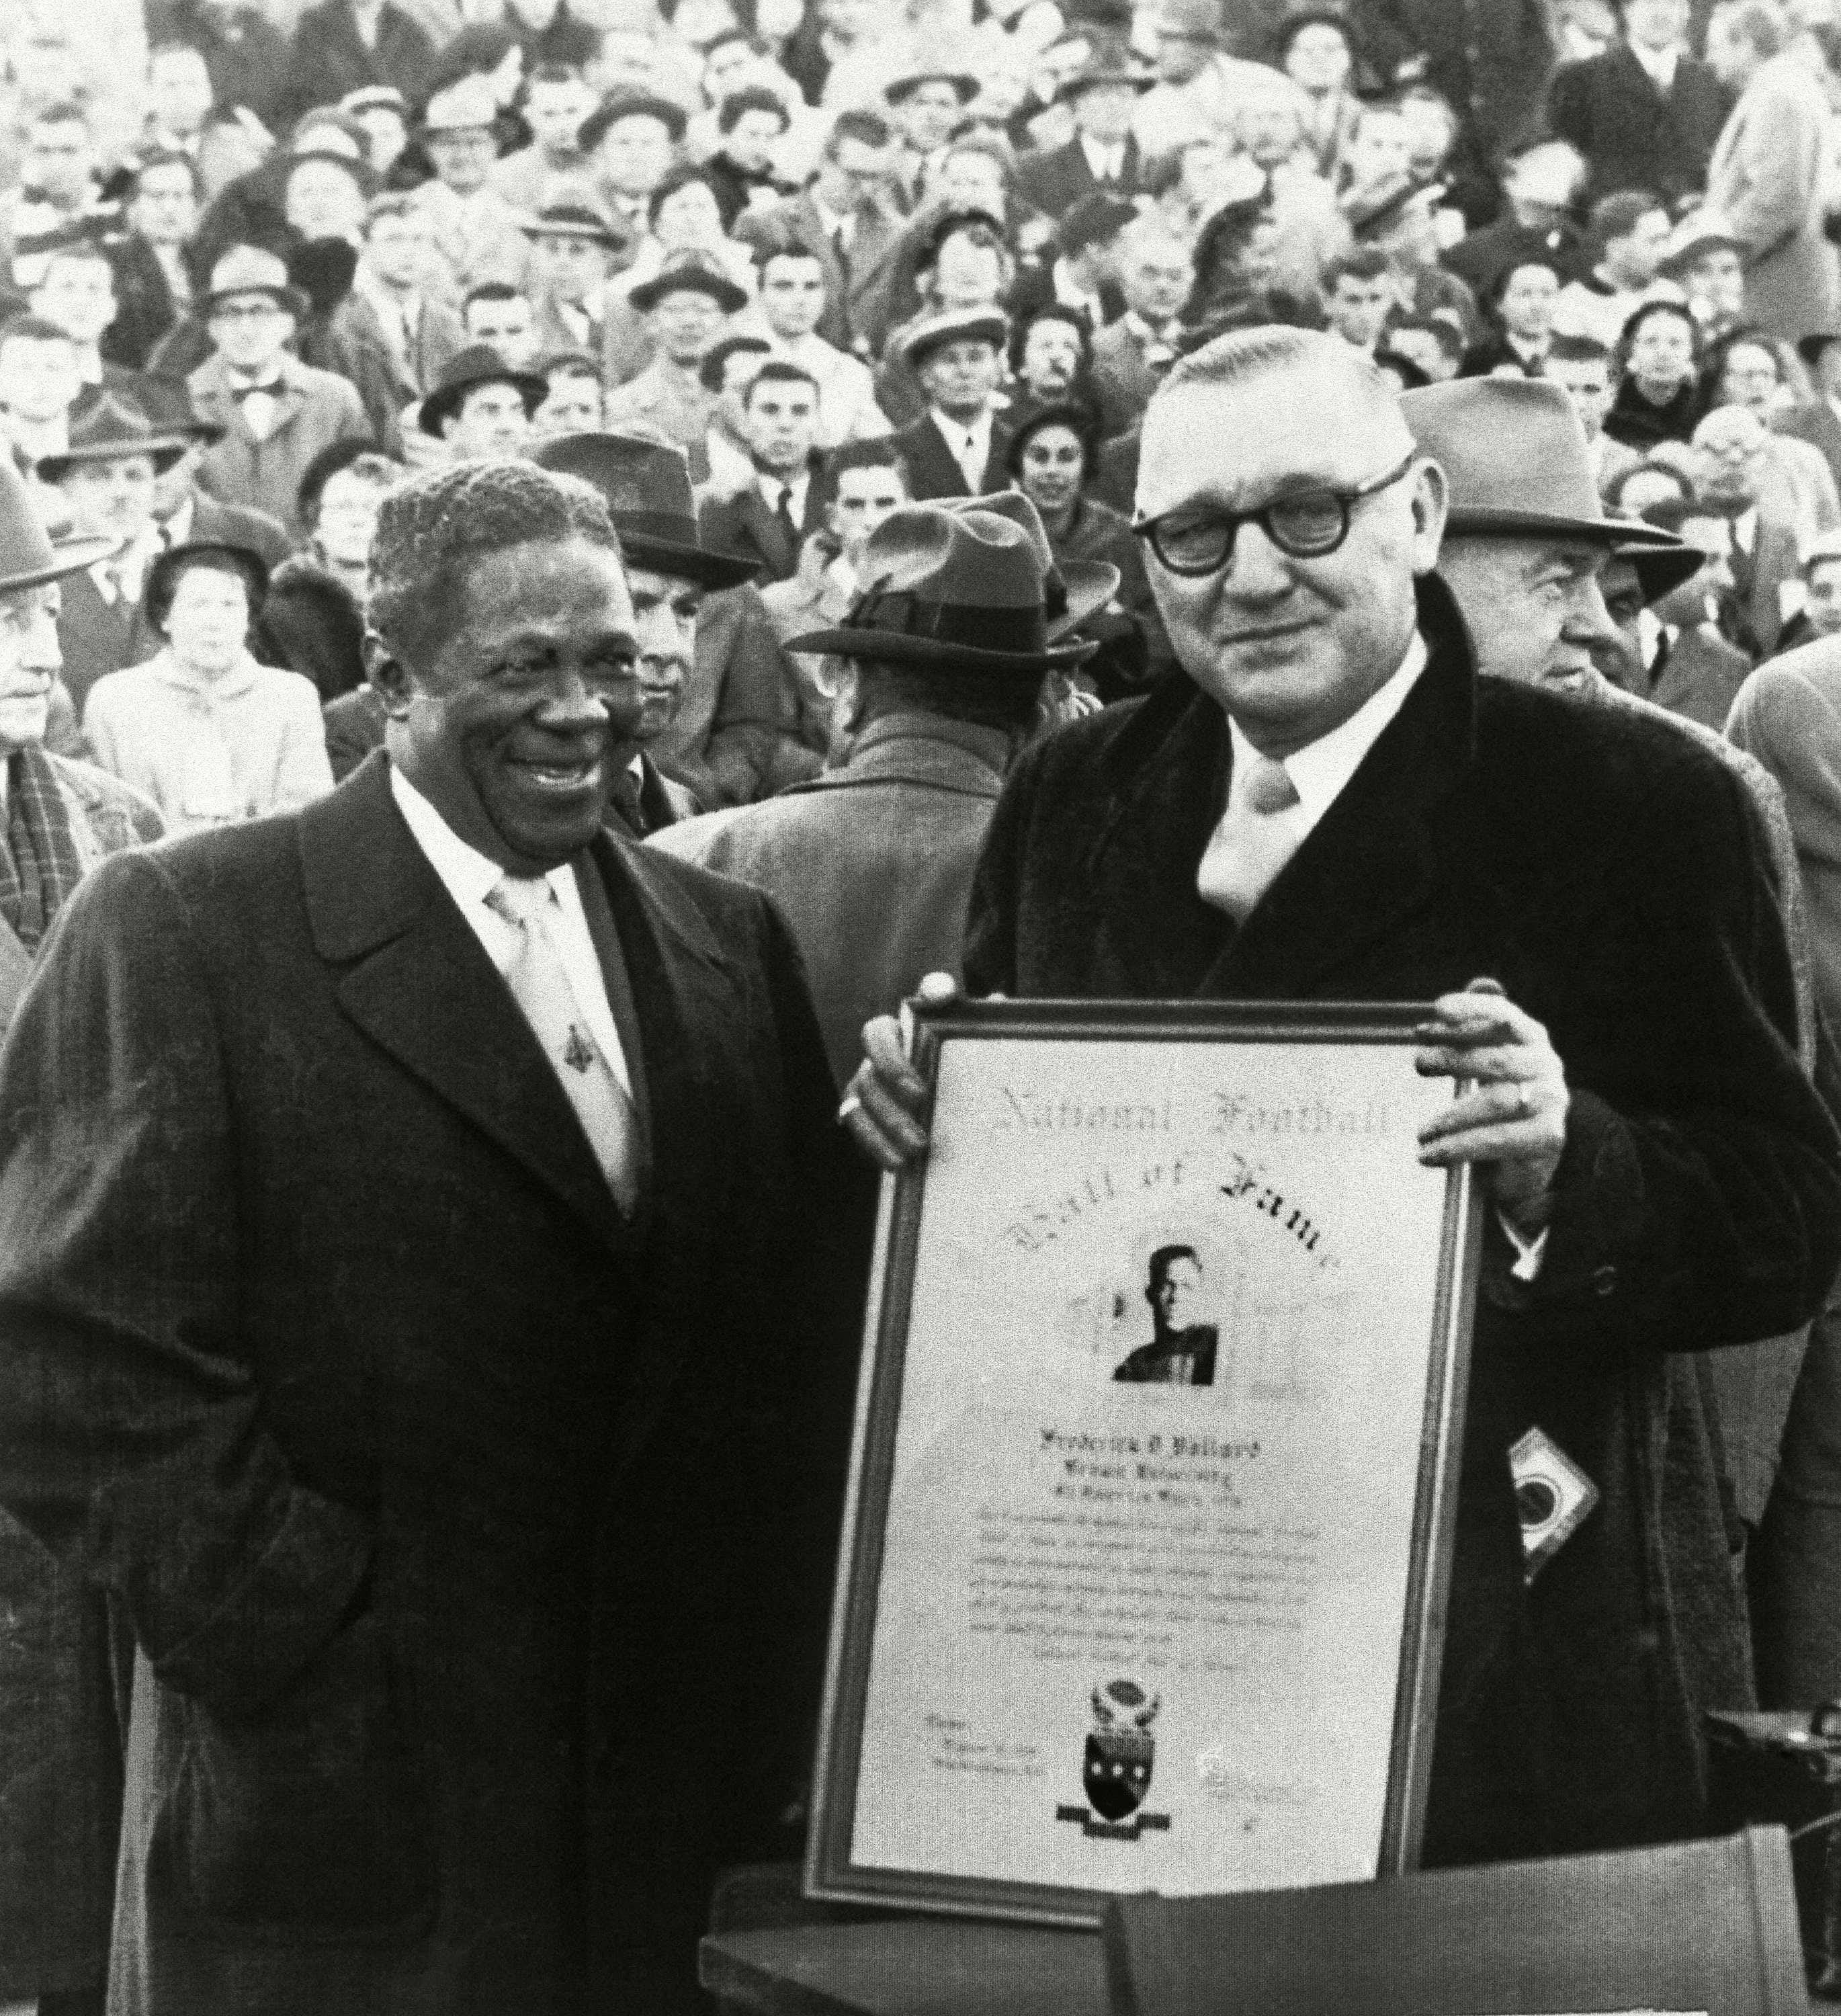 Fritz Pollard, left, all-time Brown Football great, receives a plaque as he is welcomed into the National Football Hall of Fame by Boston columnist Bill Cunningham during halftime ceremonies at the Brown-Springfield game in Providence, R.I